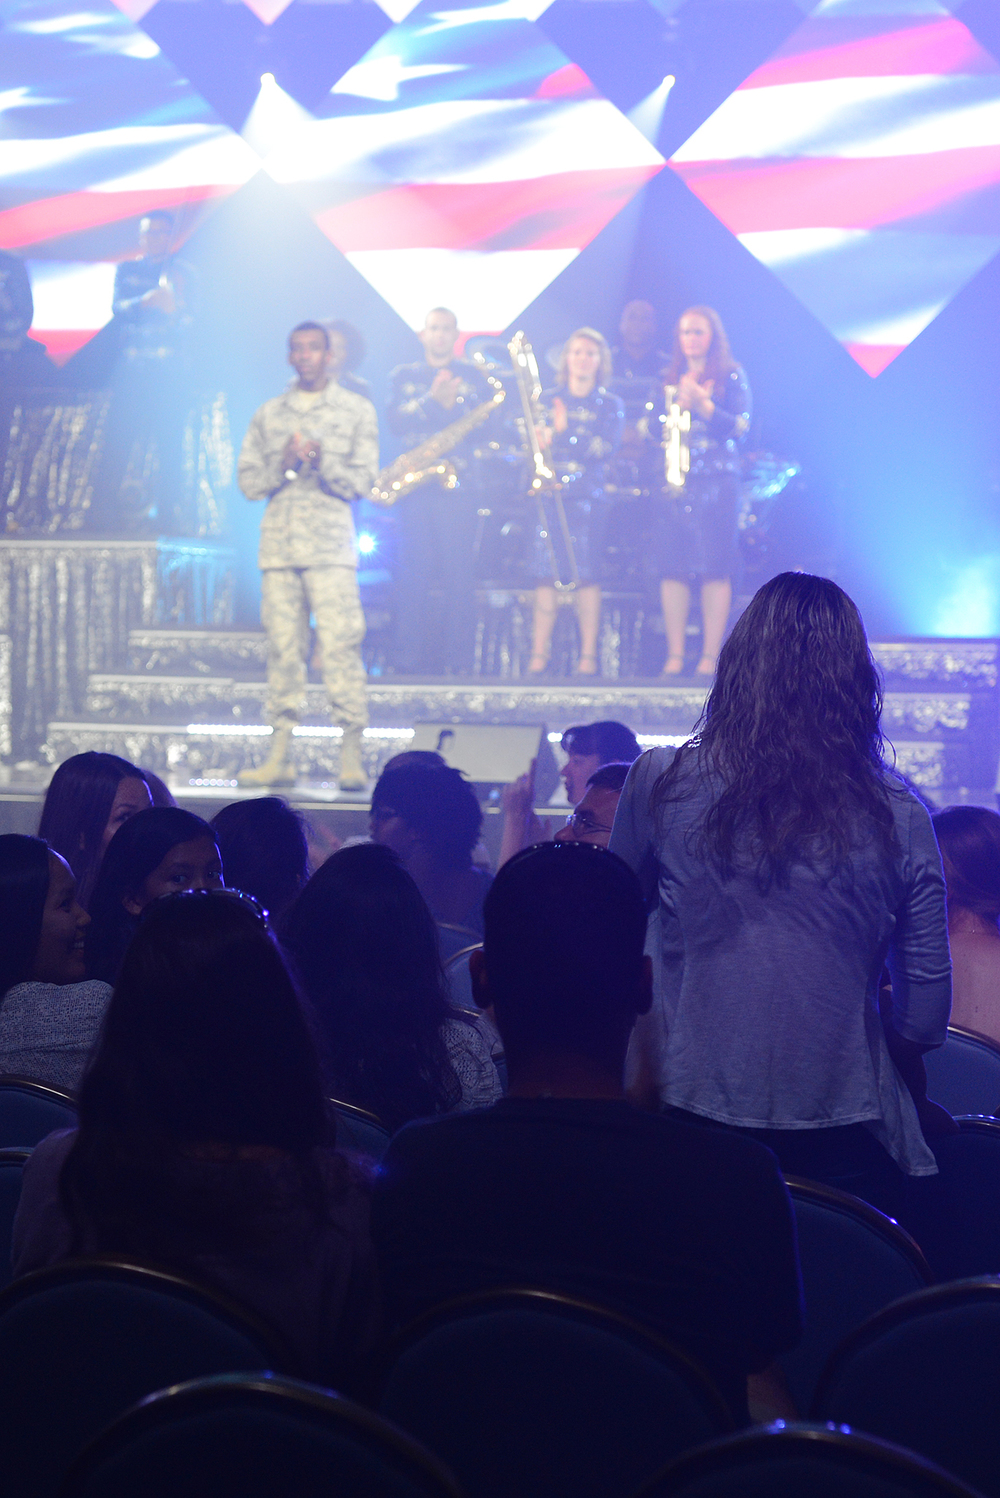 Staff Sgt. Brittany Masters, 374th Contracting Squadron contract specialist, is acknowledged for her contributions to Yokota Air Base and the local community during a Tops in Blue performance at Yokota AB, Japan, July 19, 2015. Tops in Blue provides entertainment to Air Force personnel stationed worldwide, including remote and deployed locations. (U.S. Air Force photo by Airman 1st Class David C. Danford/Released)